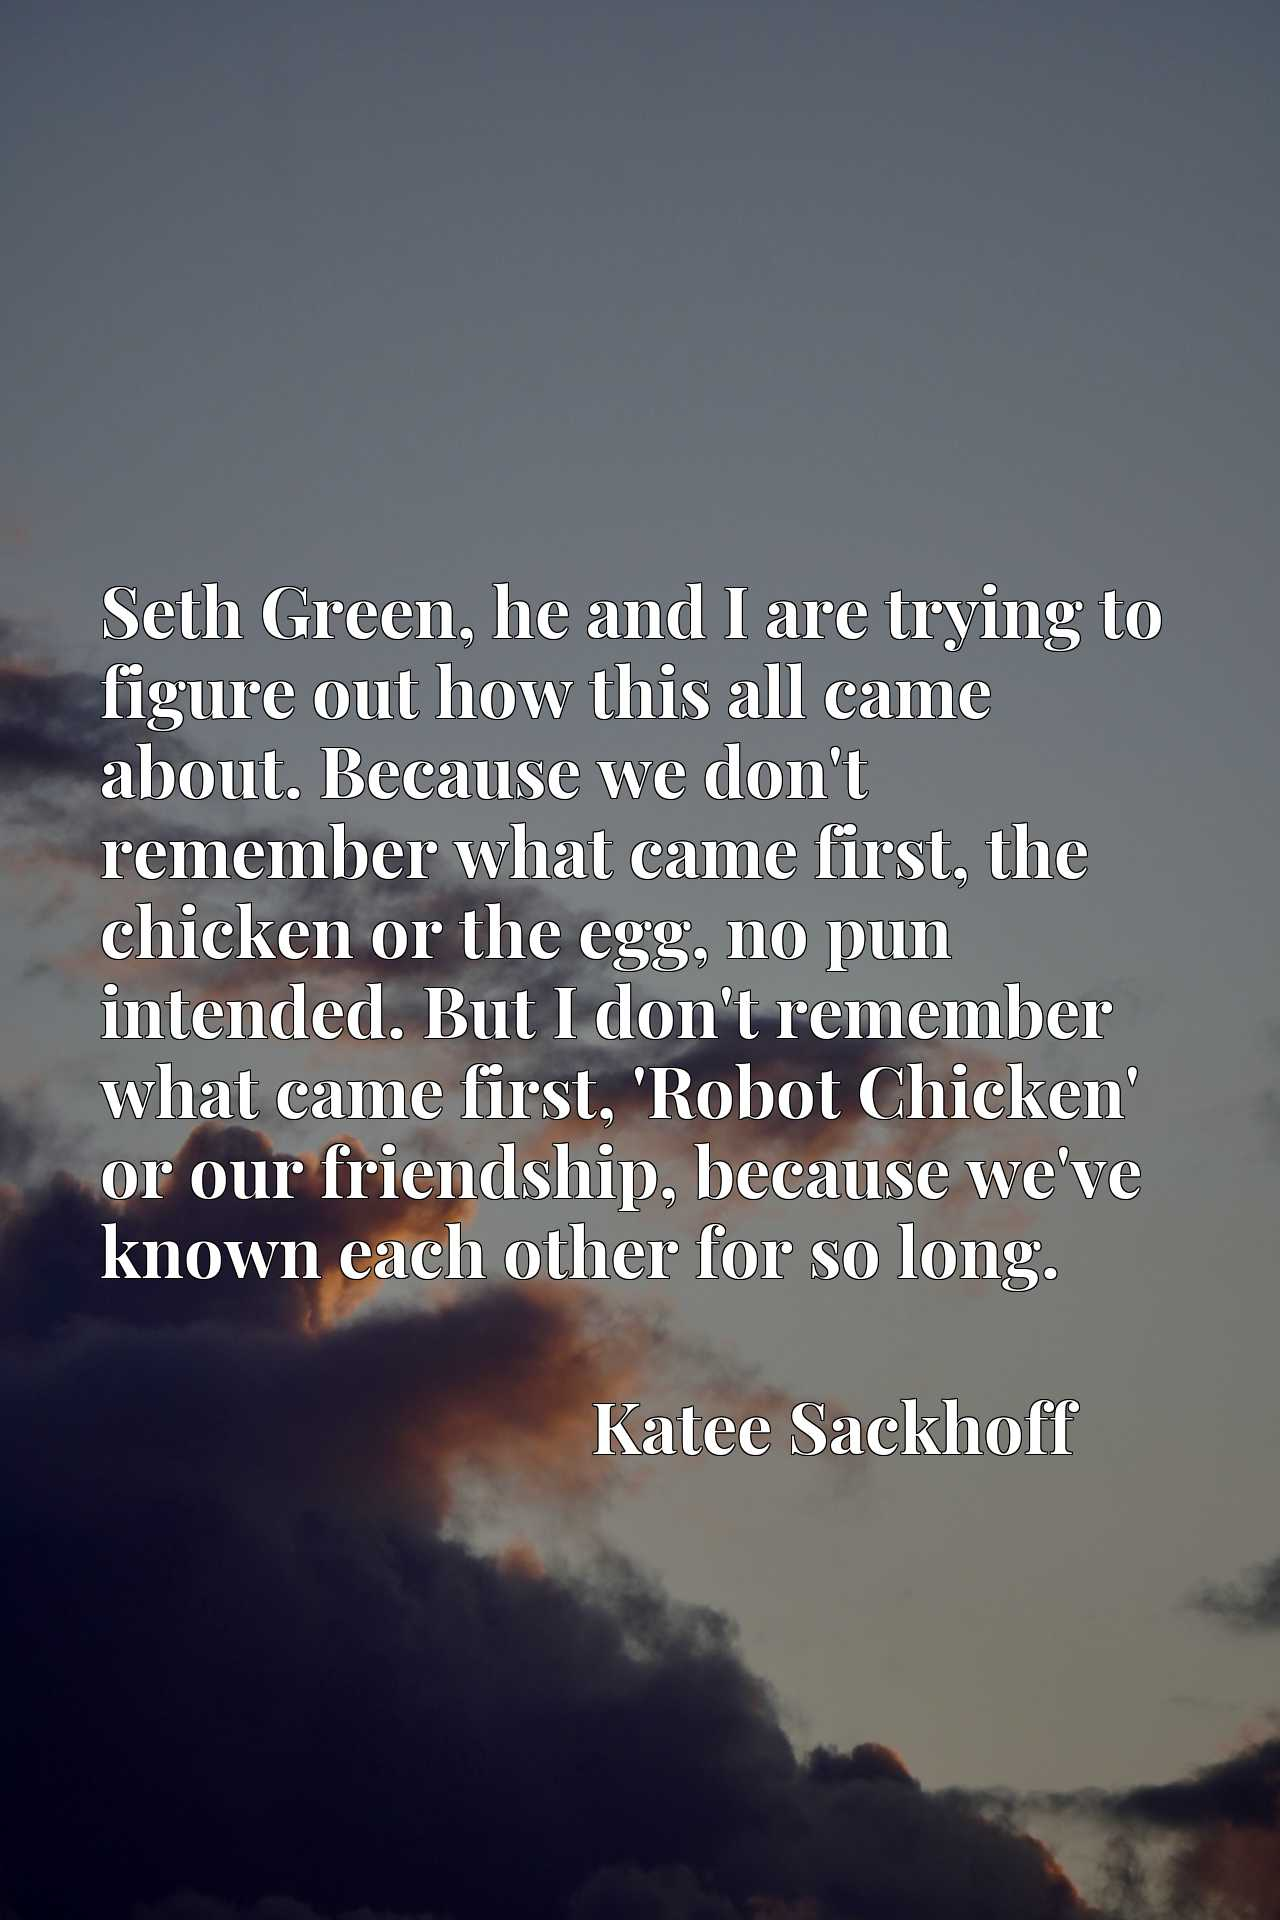 Seth Green, he and I are trying to figure out how this all came about. Because we don't remember what came first, the chicken or the egg, no pun intended. But I don't remember what came first, 'Robot Chicken' or our friendship, because we've known each other for so long.